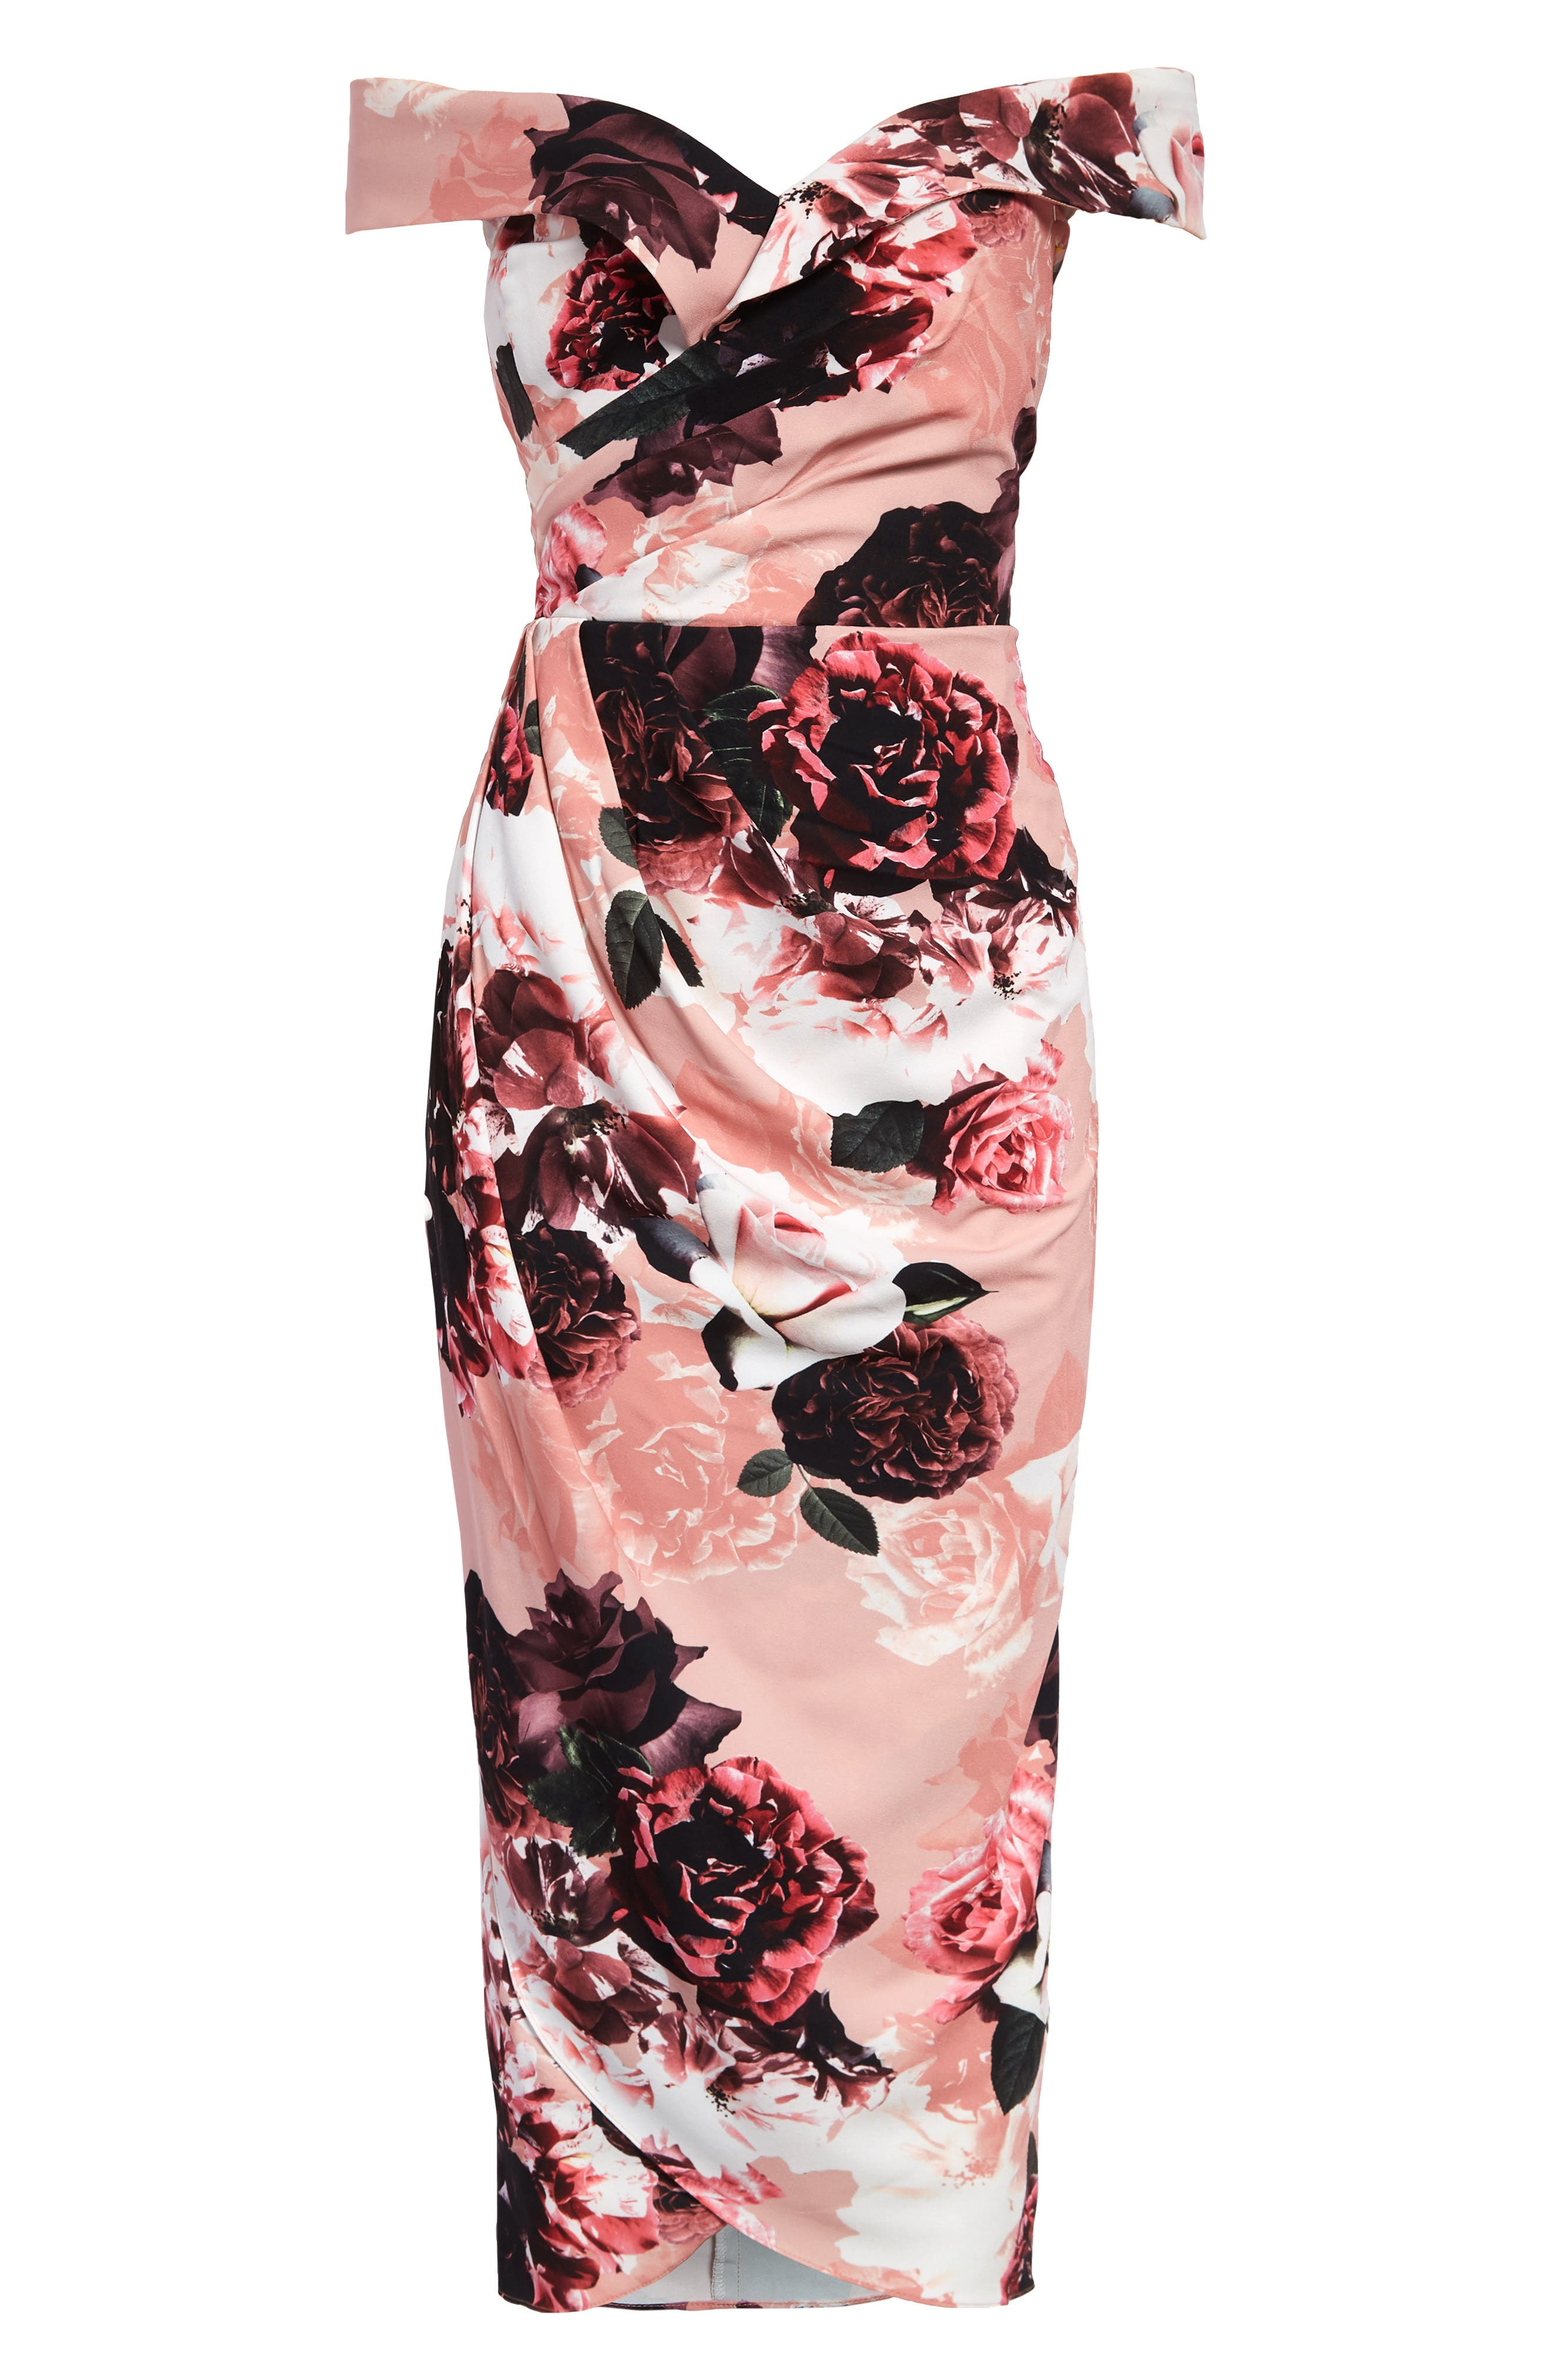 In Love Floral Dress